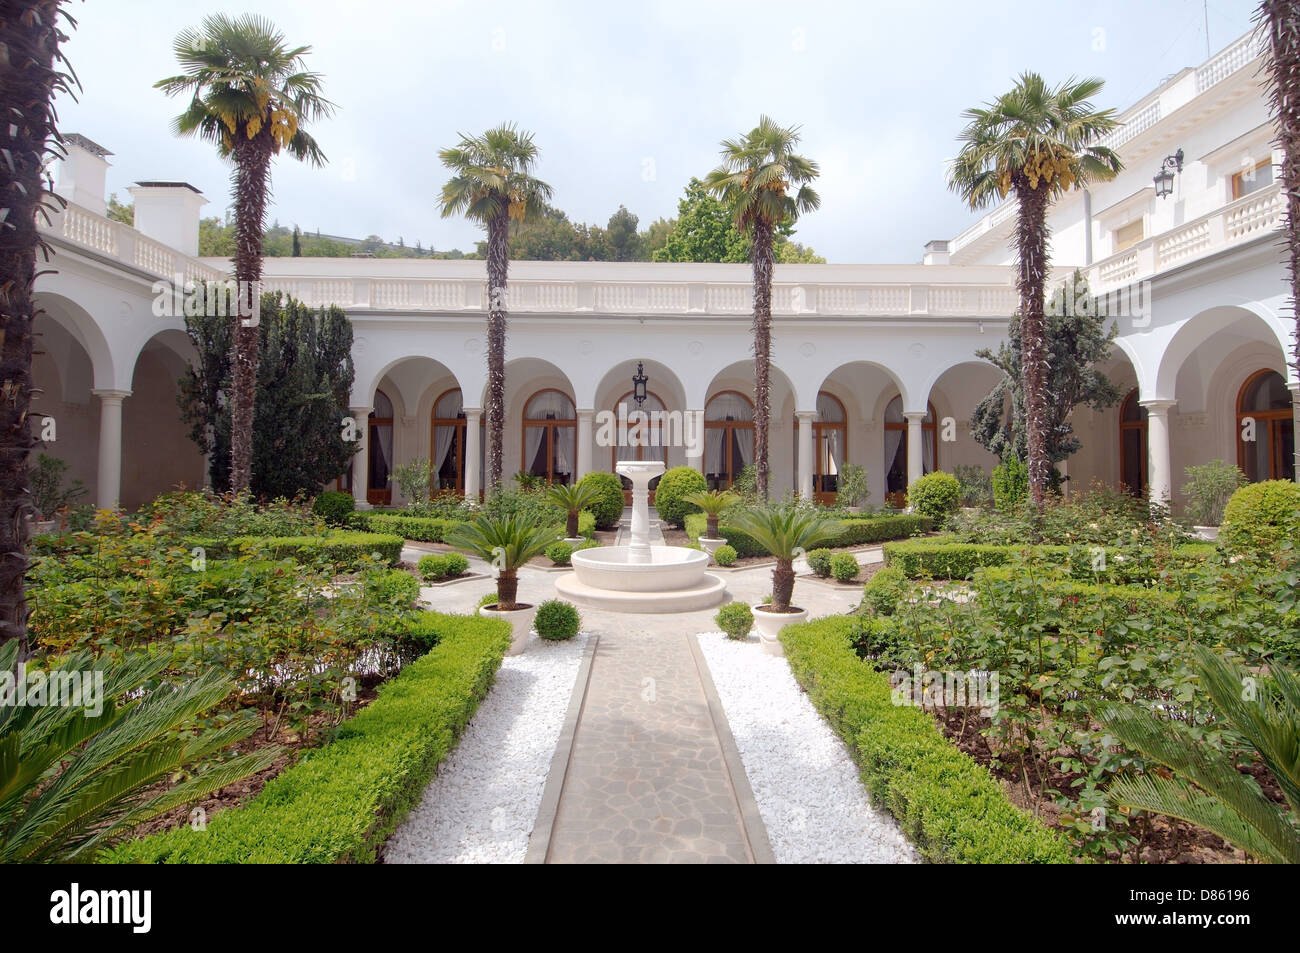 Italian courtyard of the Grand Livadia Palace - summer palace of the last Russian Imperial family - Stock Image